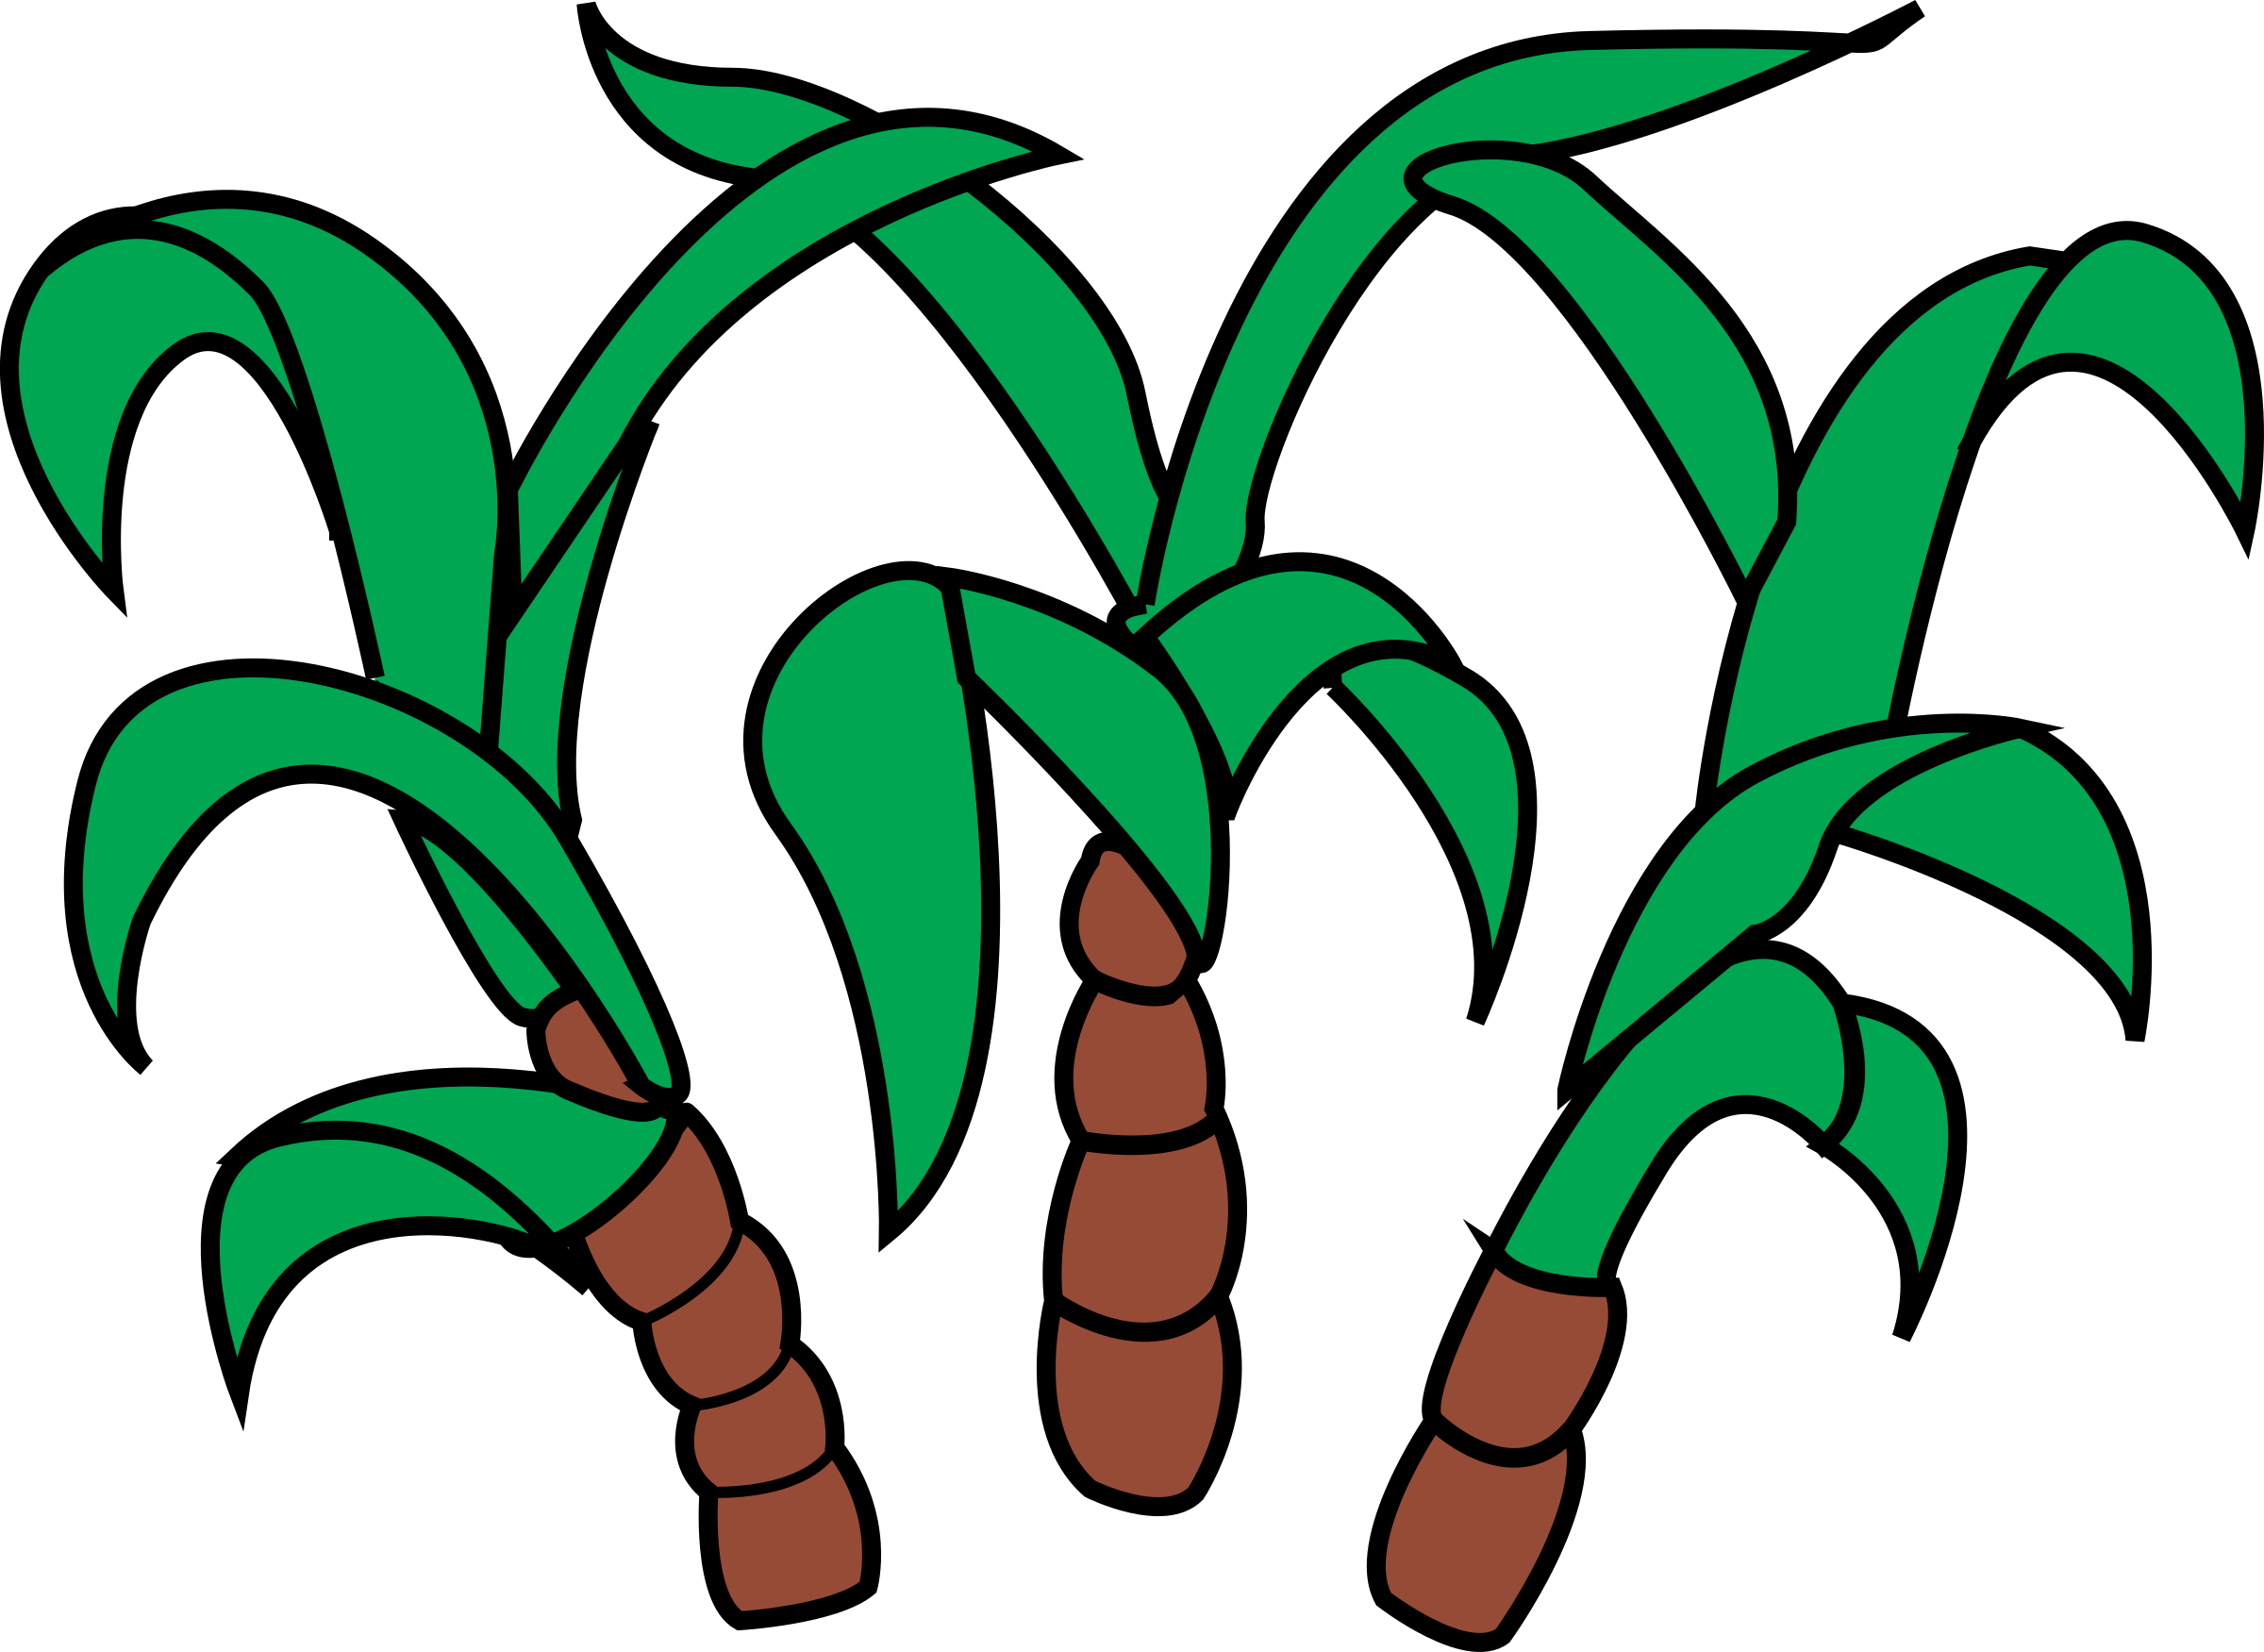 Damaged tree clipart svg freeuse library Sugar Cane Drawing at GetDrawings.com   Free for personal use Sugar ... svg freeuse library